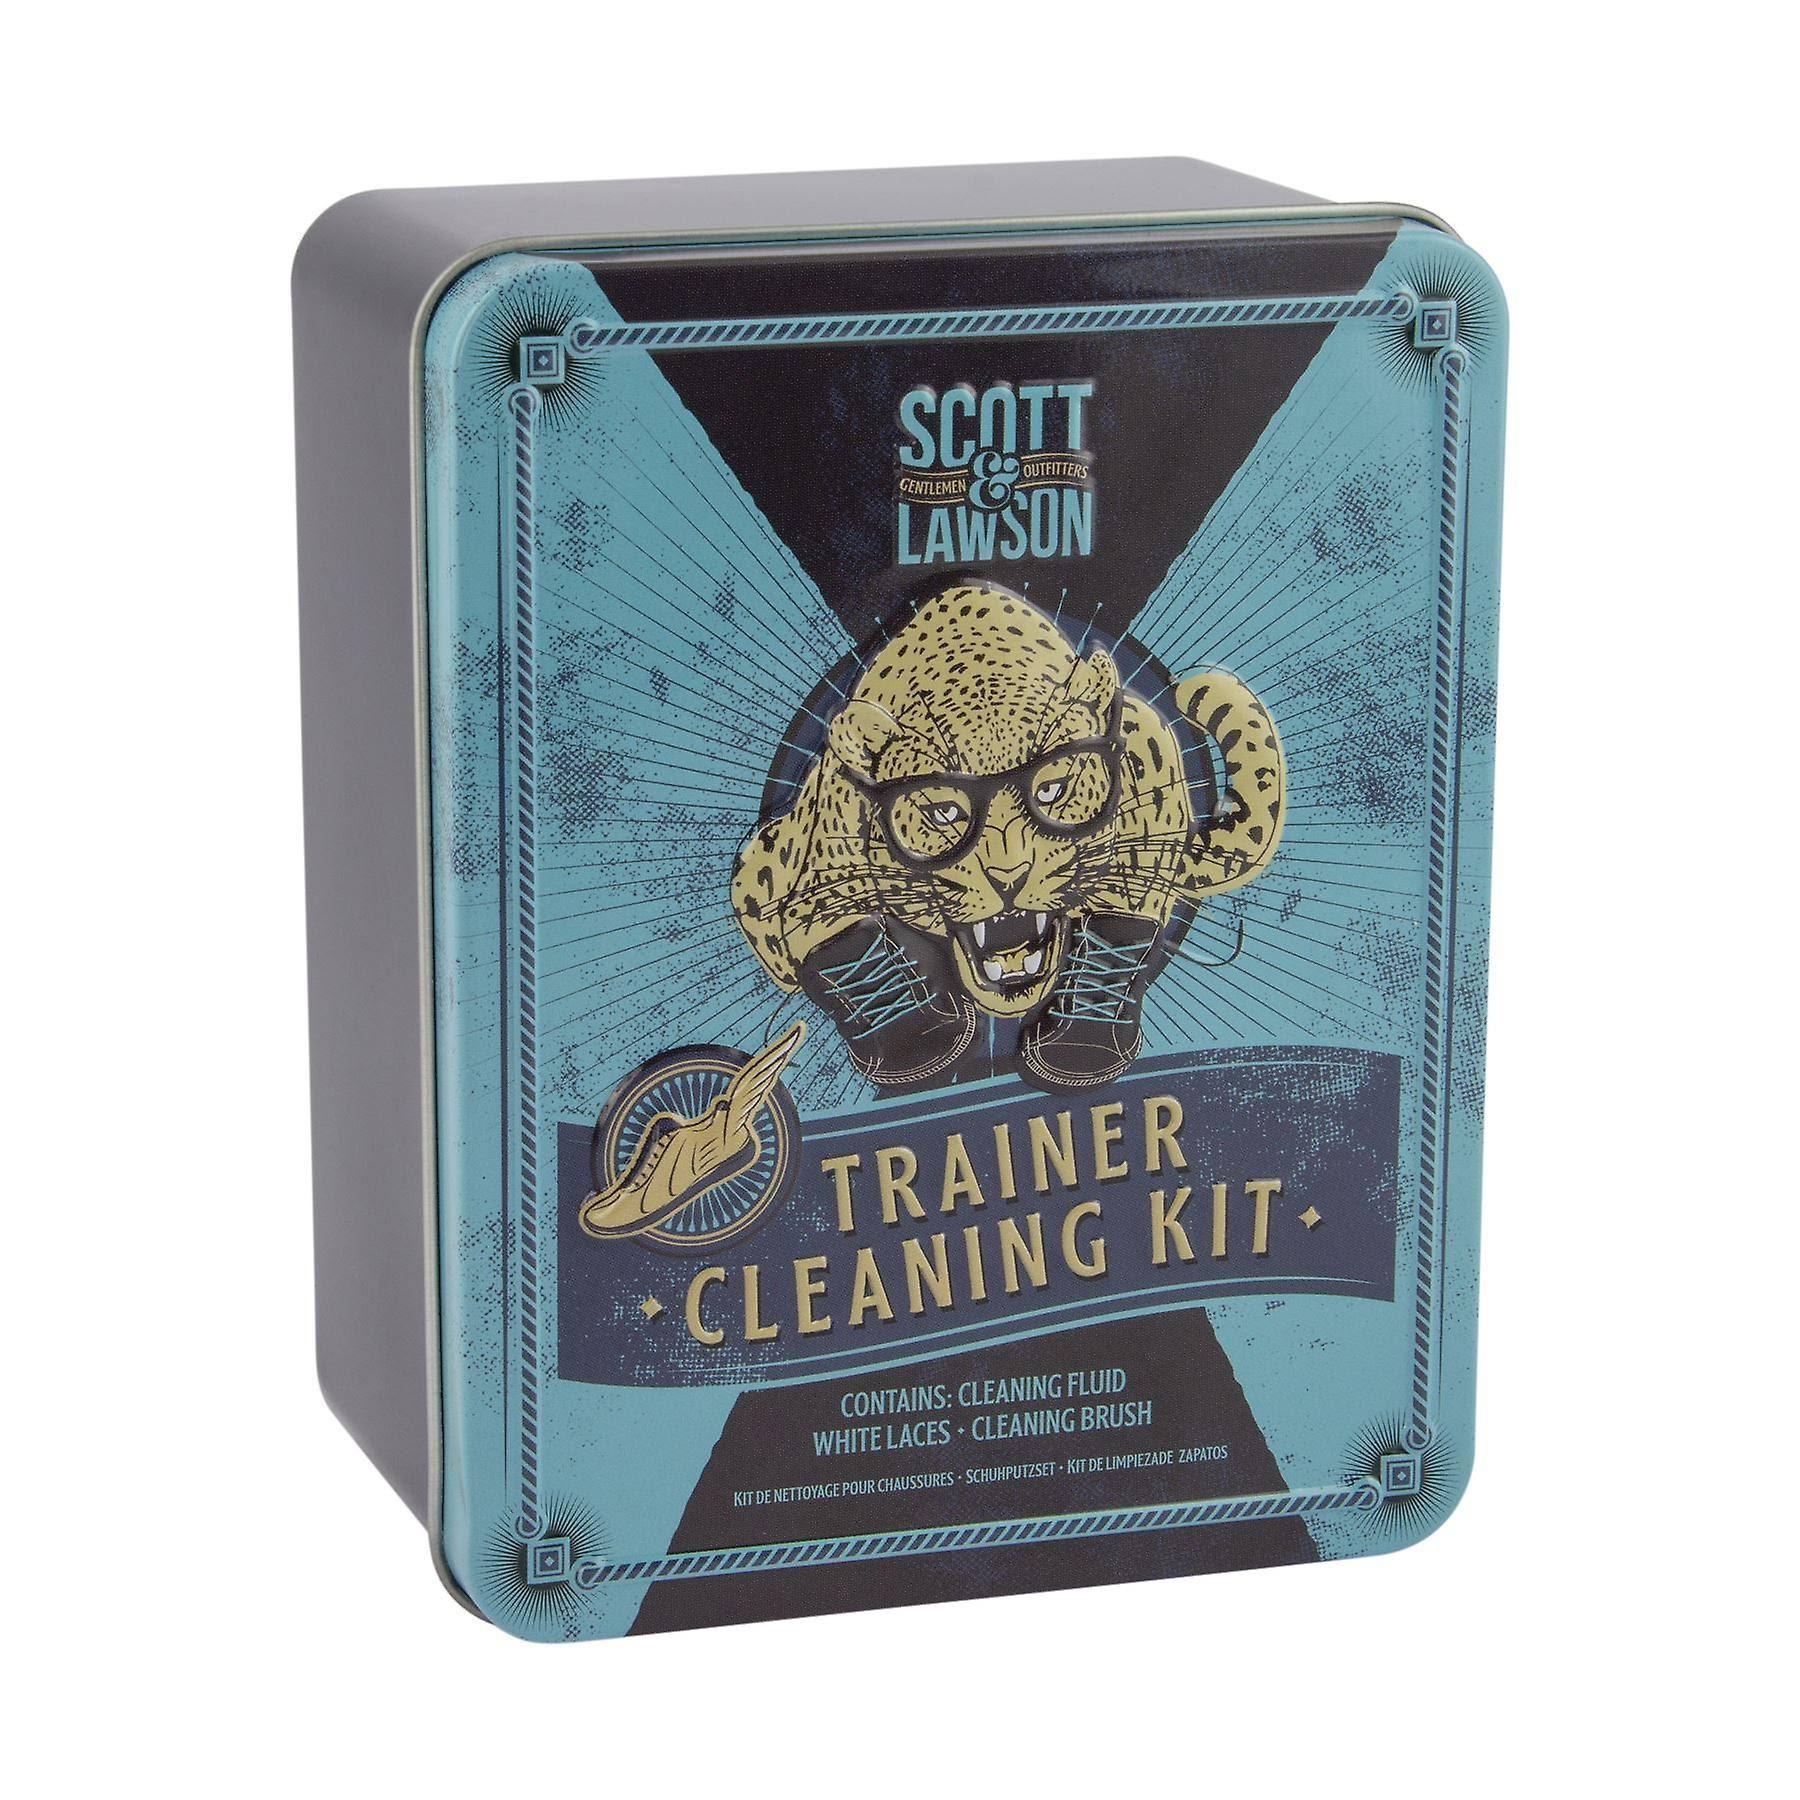 Scott and Lawson Trainer Cleaning Kit